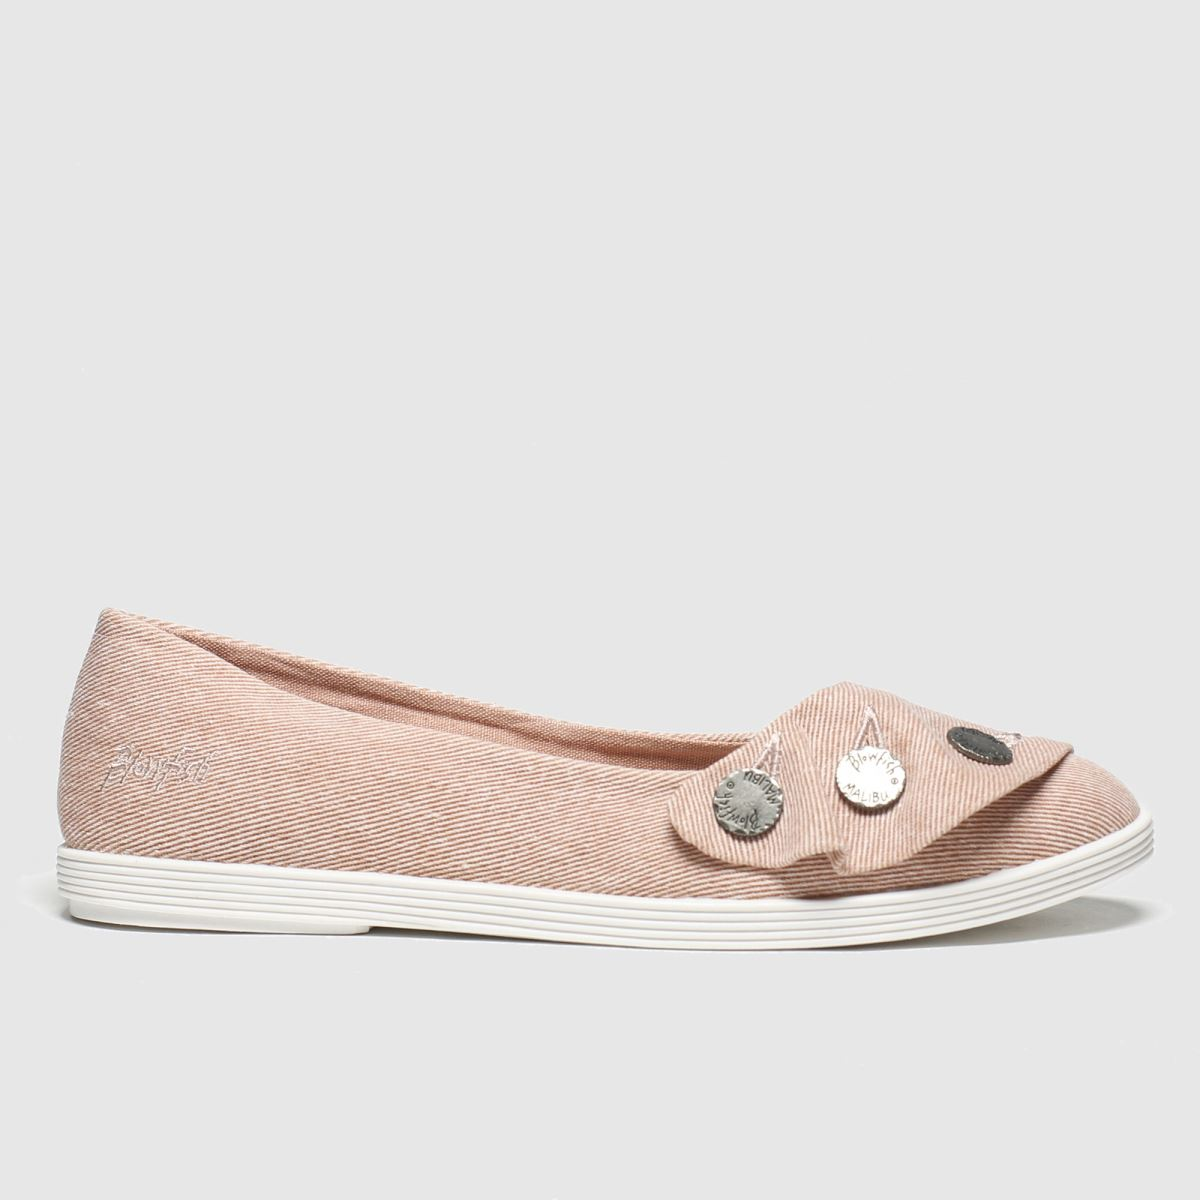 Blowfish Blowfish Pale Pink Gogogo Flat Shoes